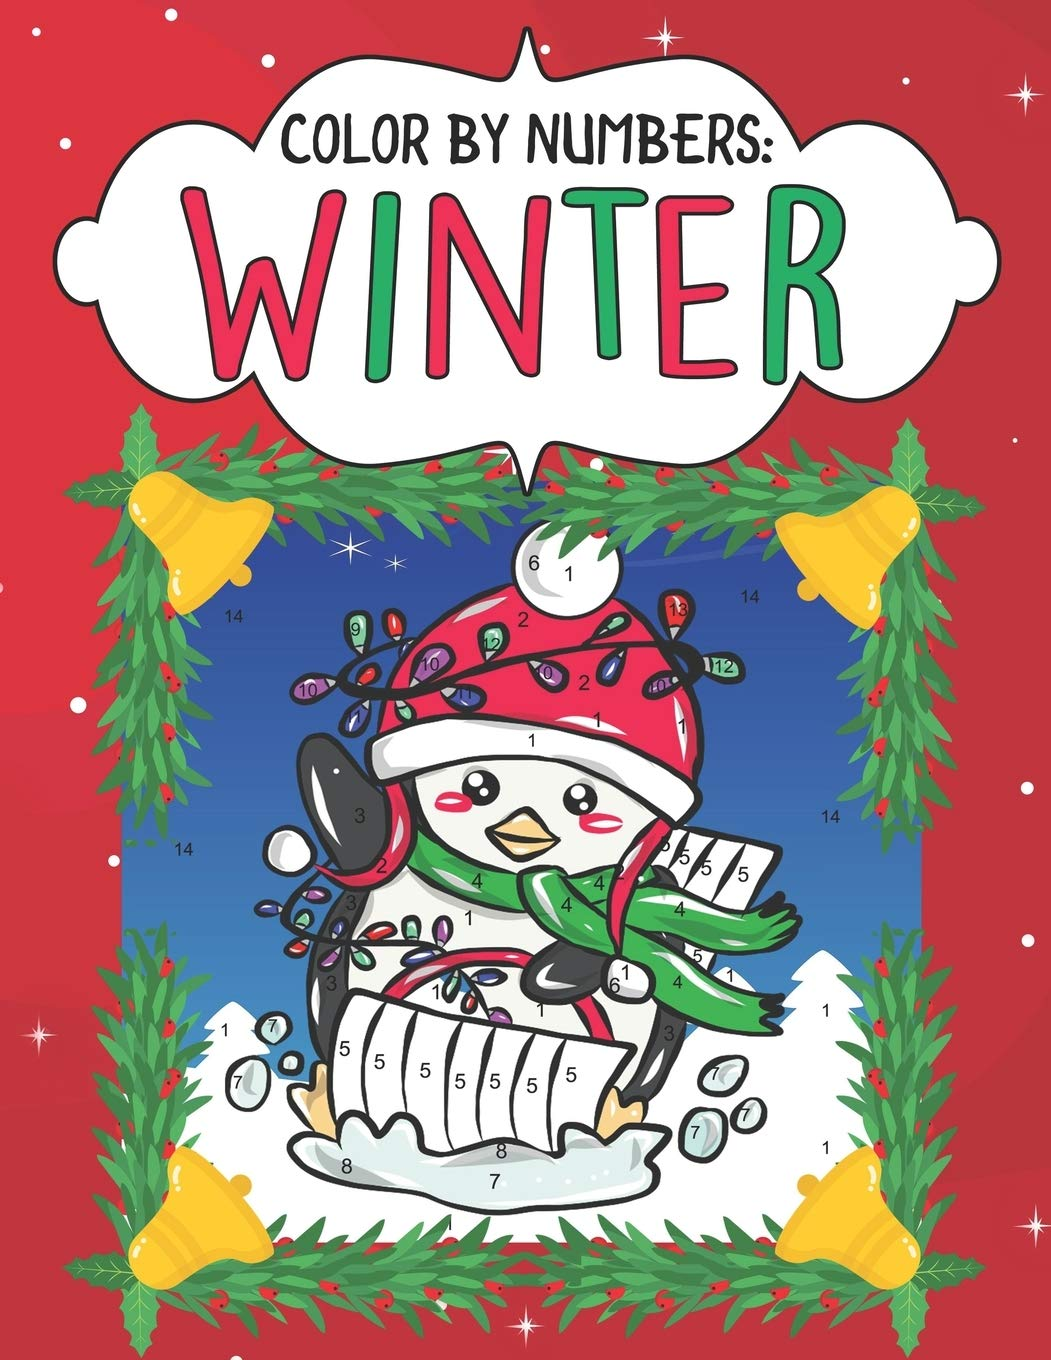 Color By Numbers Winter A Christmas Color By Number Coloring Book For Girls And Boys With Festive Winter Wonderland Holiday Scenes Featuring Santa And More Color By Numbers For Kids Ages